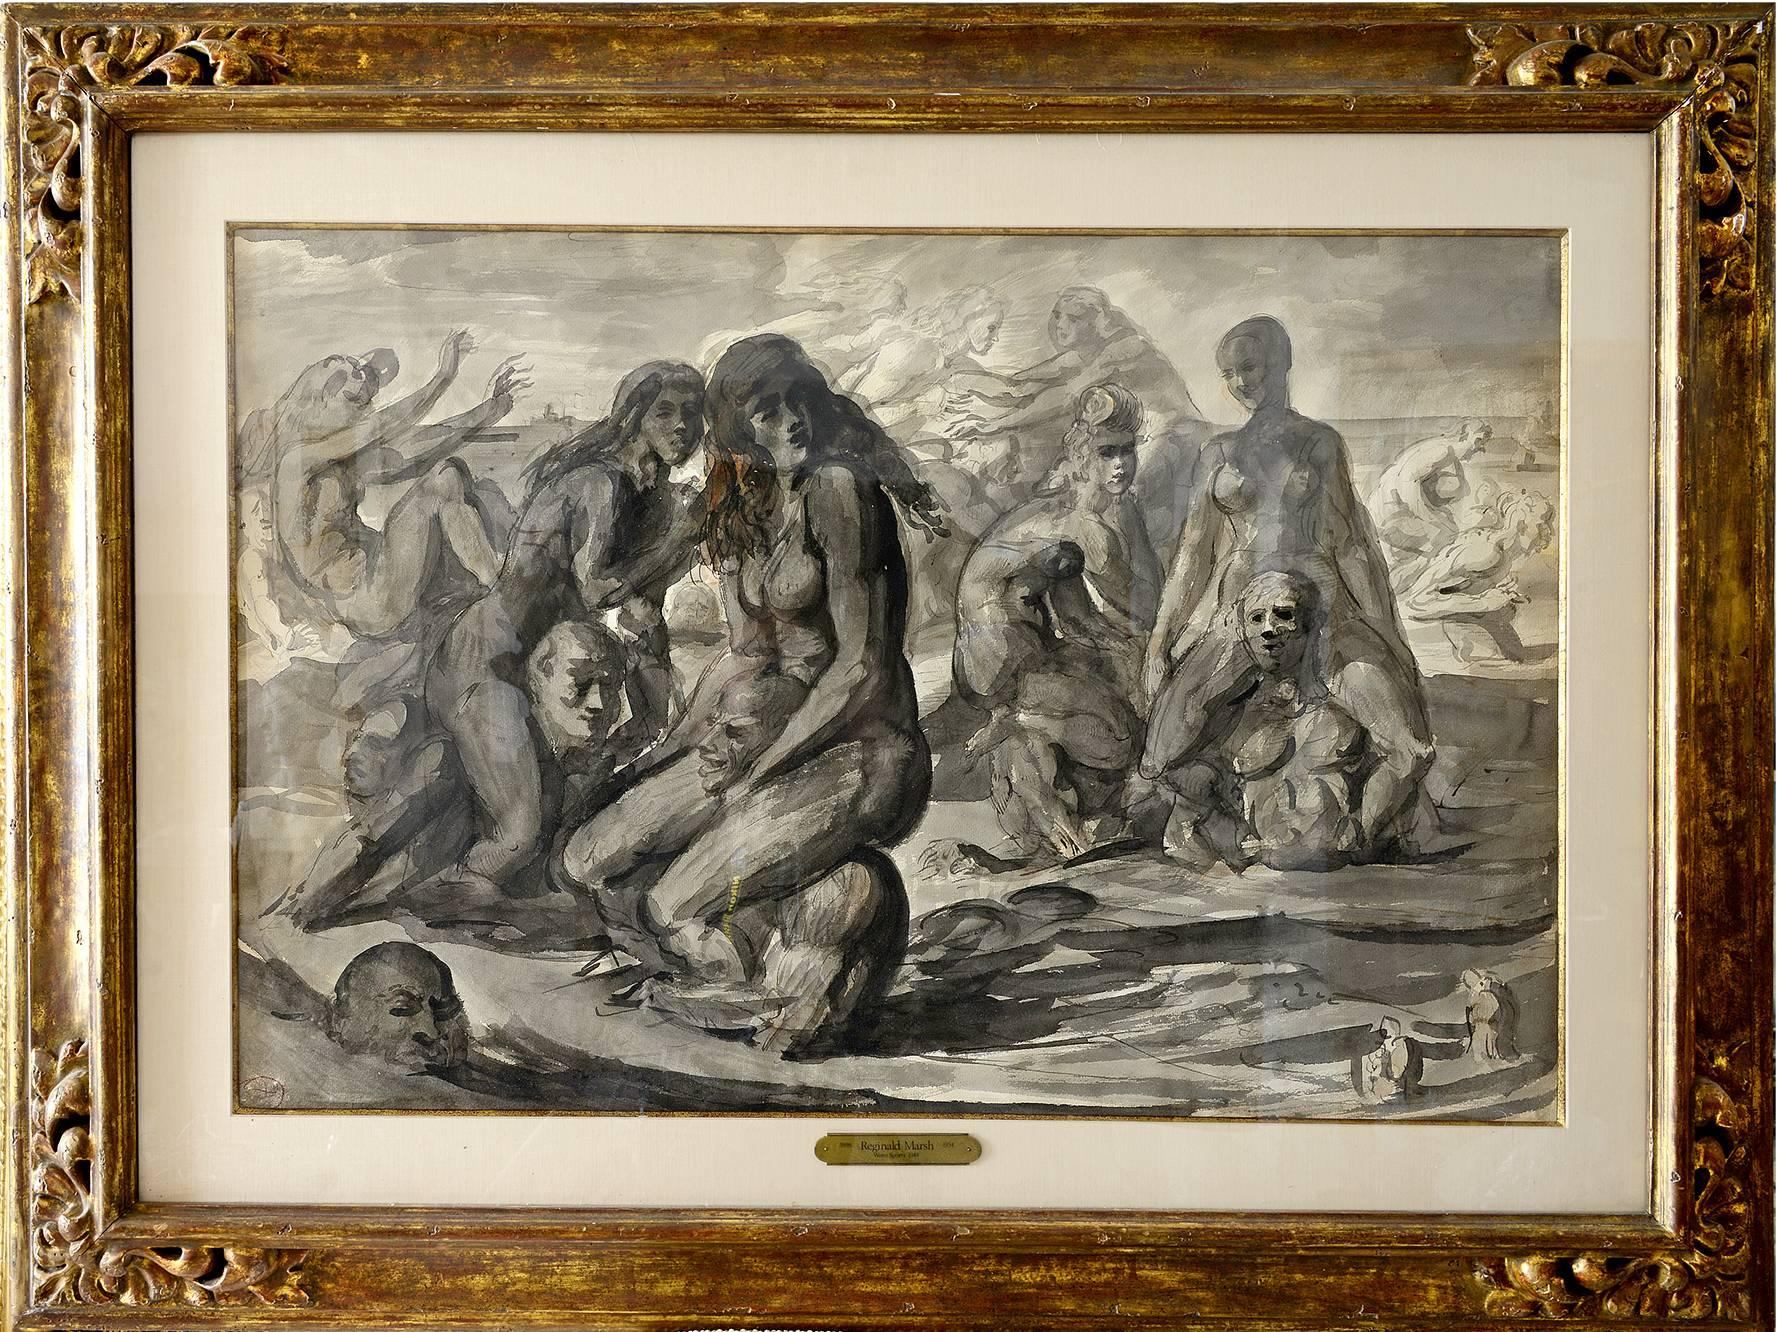 Water Sports - Nude Swimmers and Bathers at Coney Island - Double-Sided